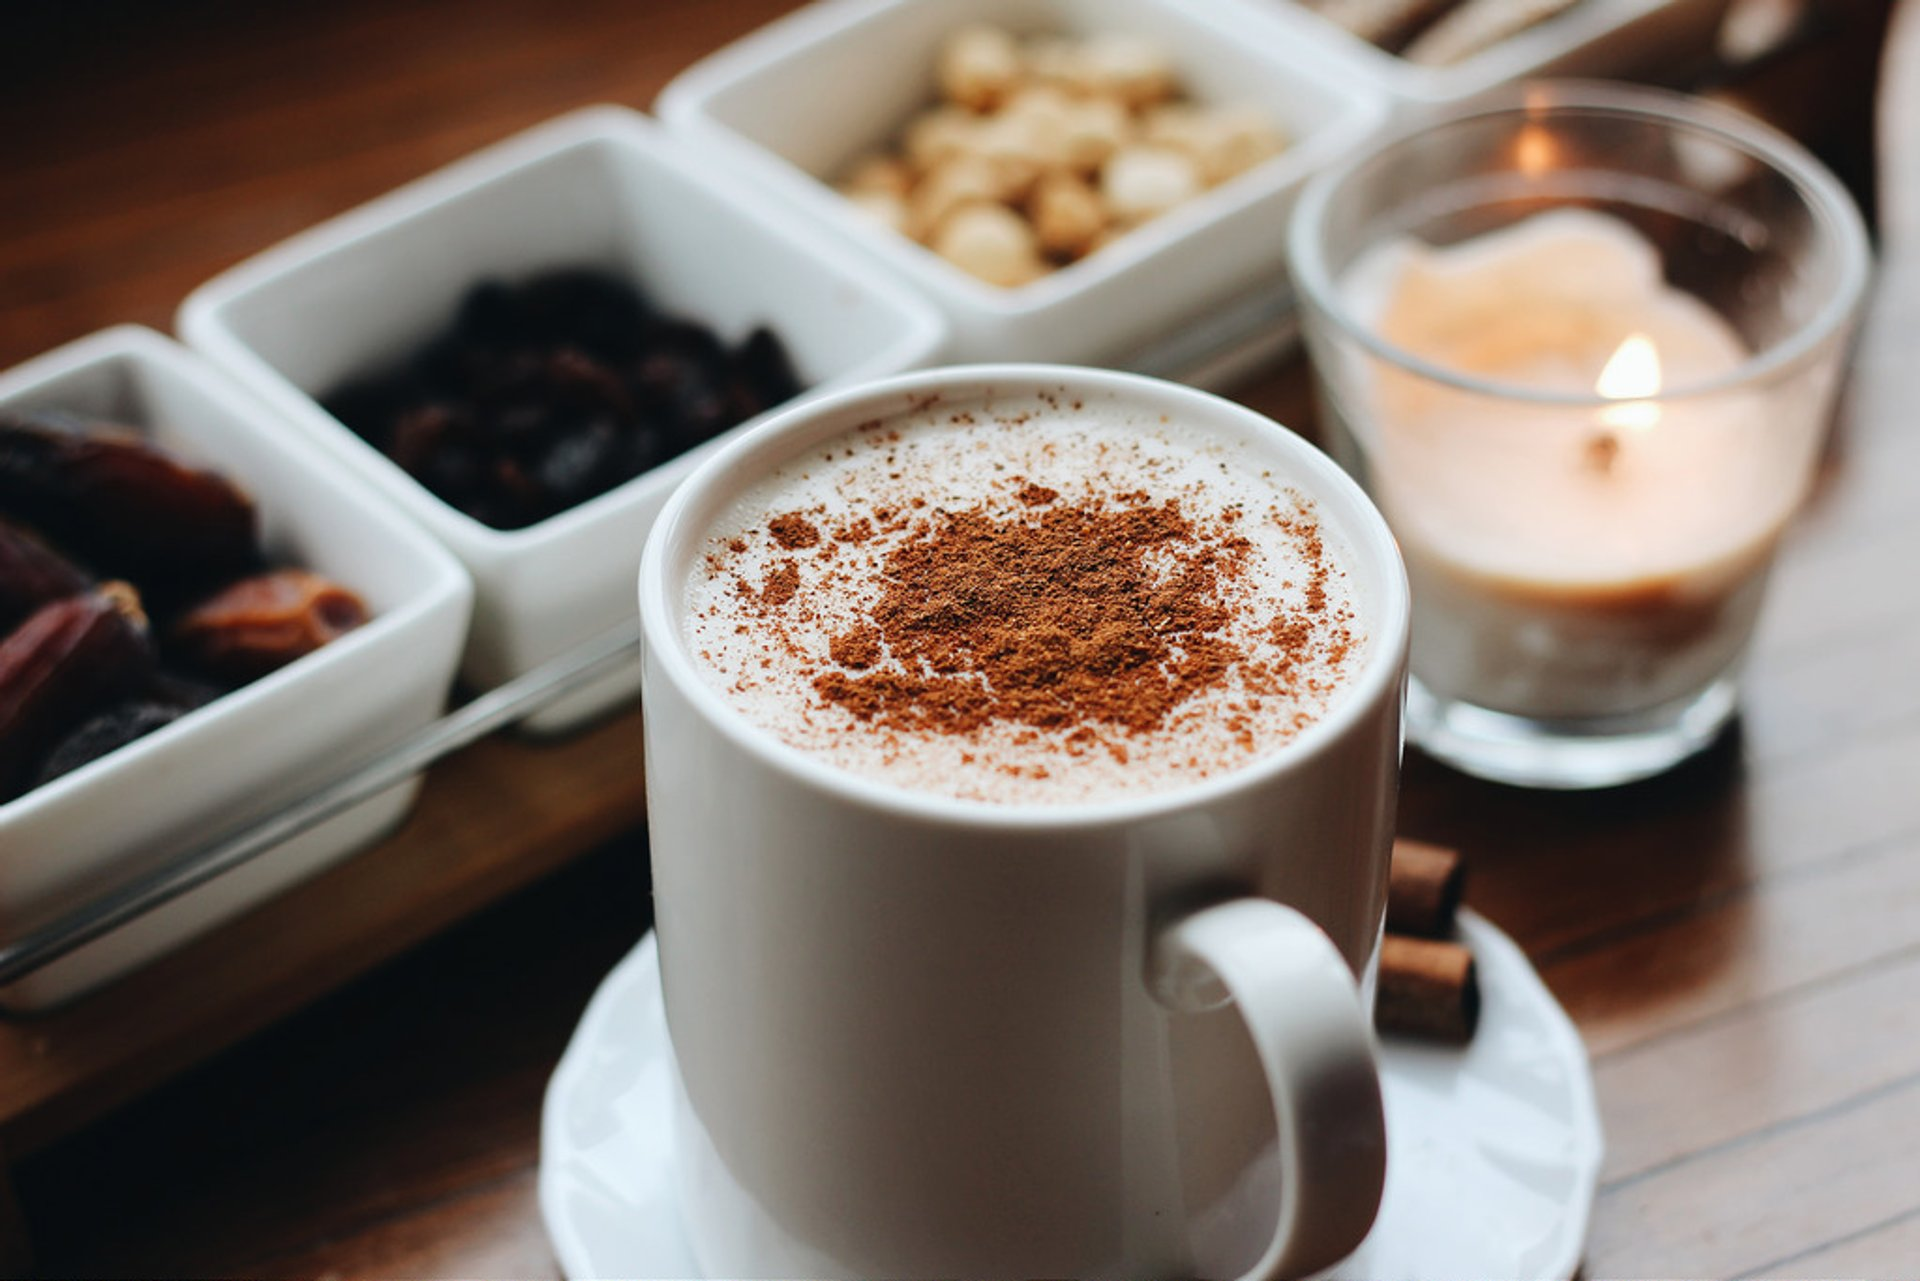 Salep Drink in Istanbul 2019 - Best Time